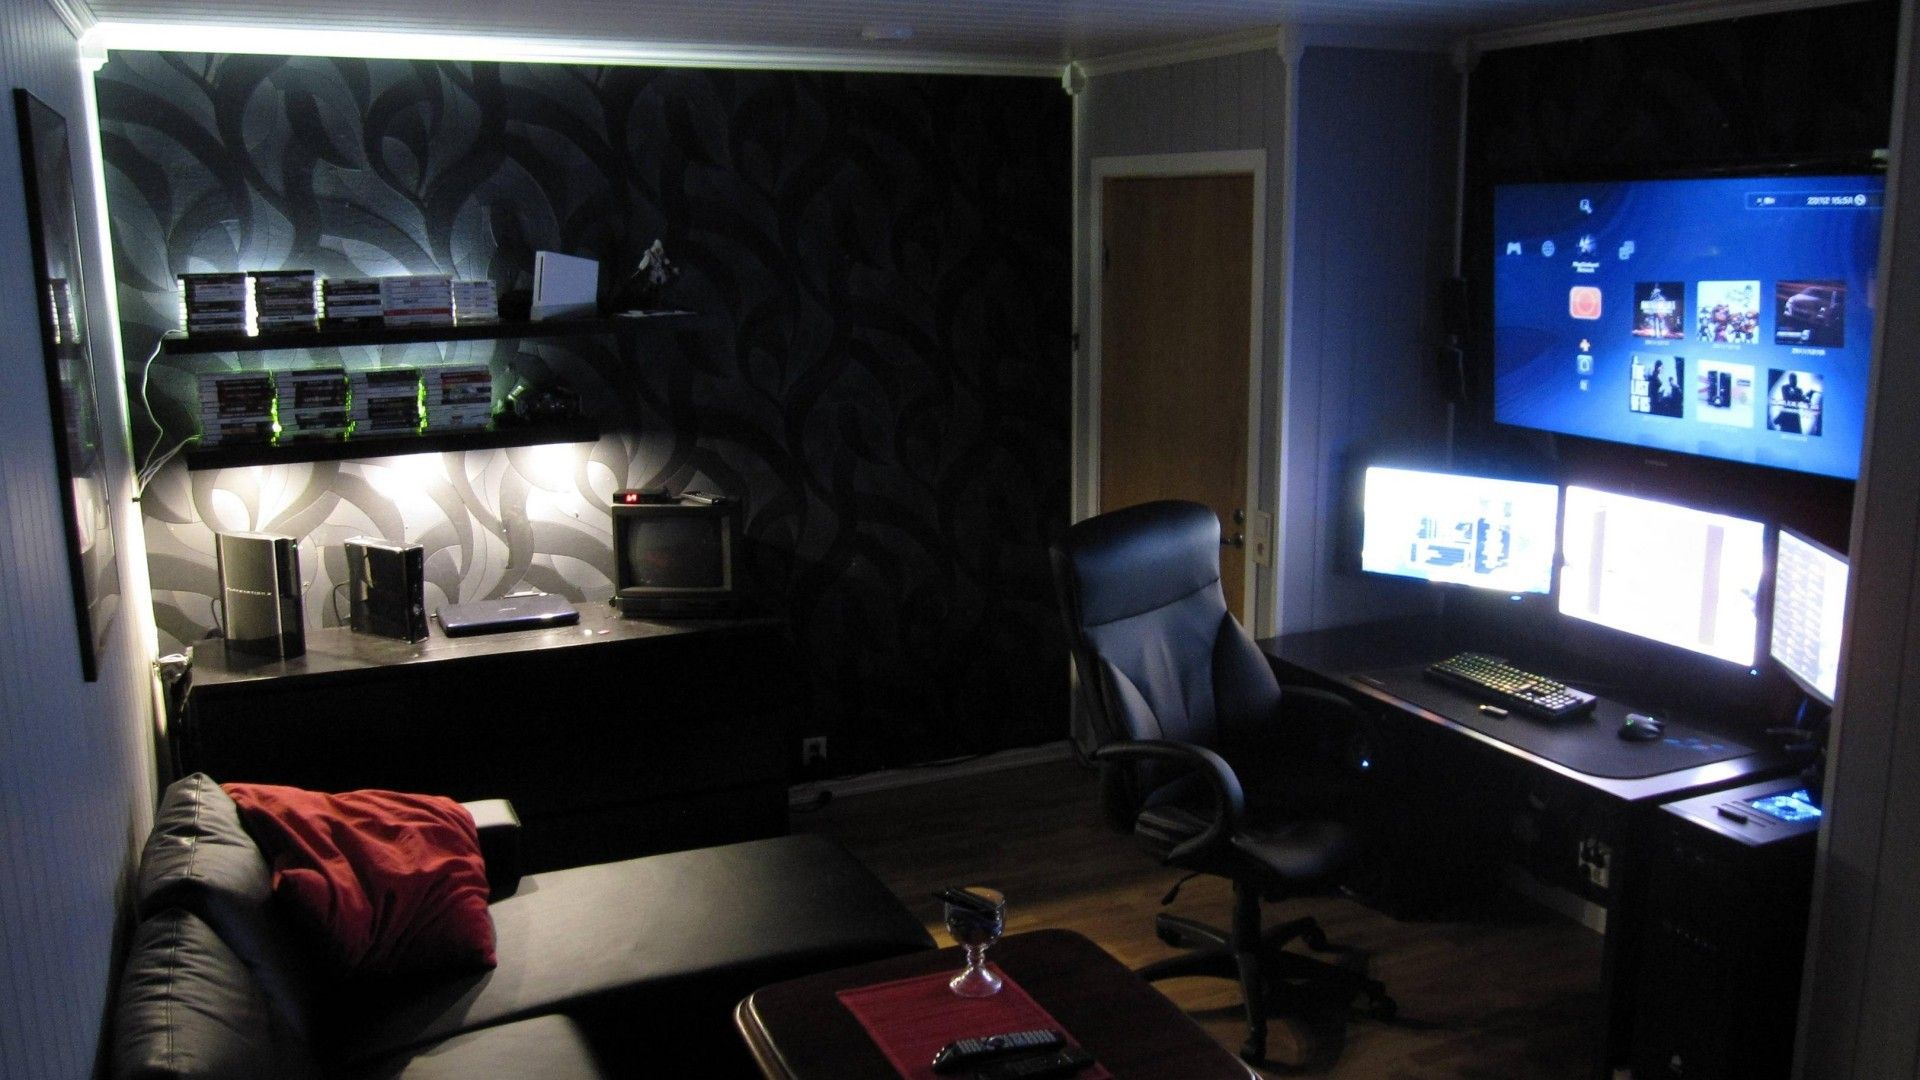 Functional Gaming Room 1920x1080 Game Room Design Room Setup Gaming Room Setup